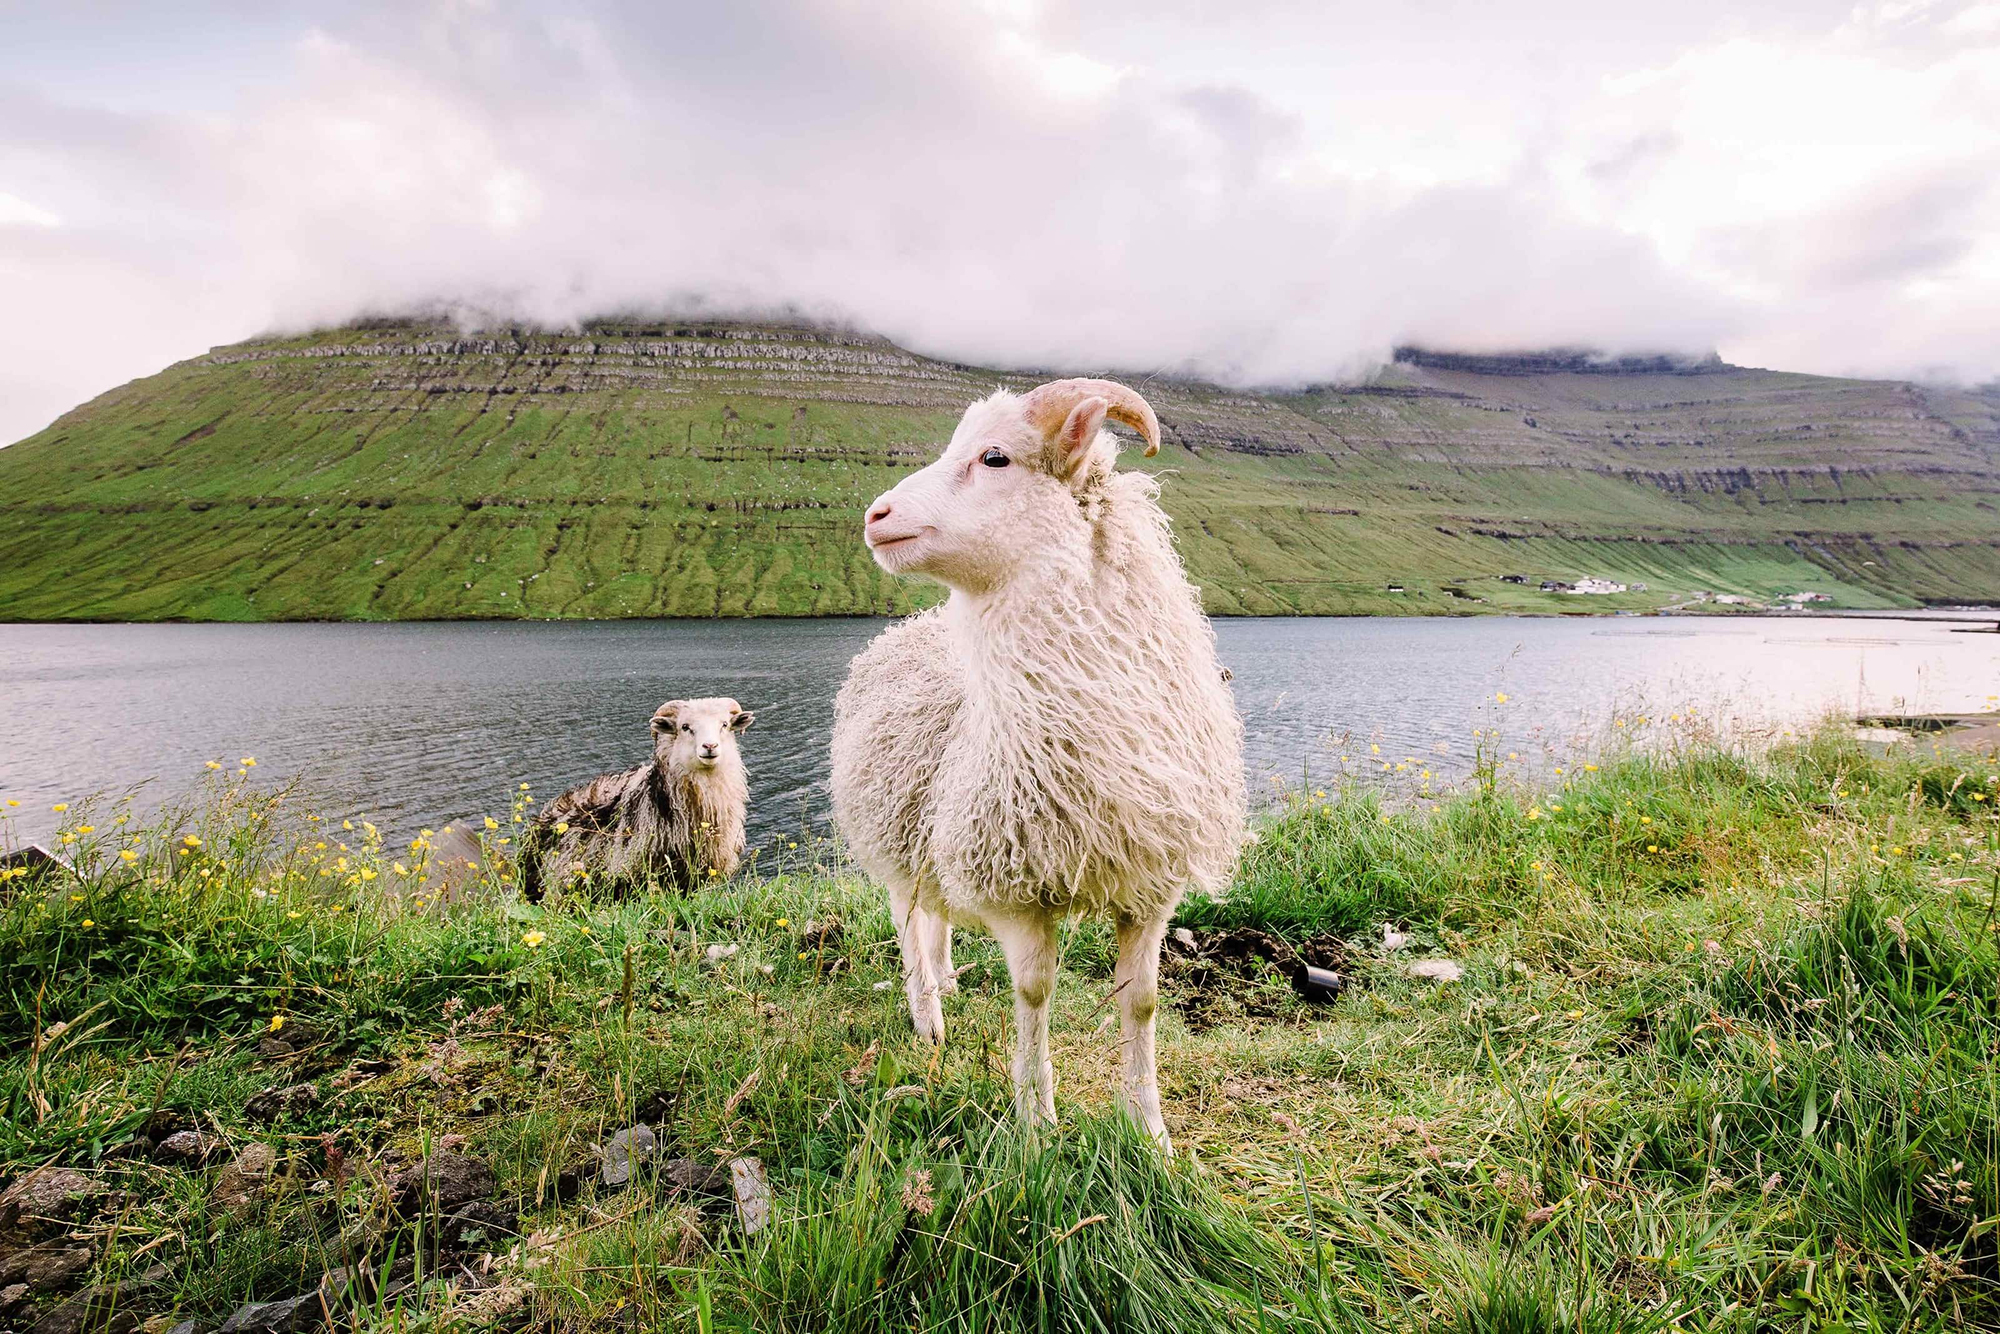 Two sheep standing on a grassy riverbank across from a cloudy mountain